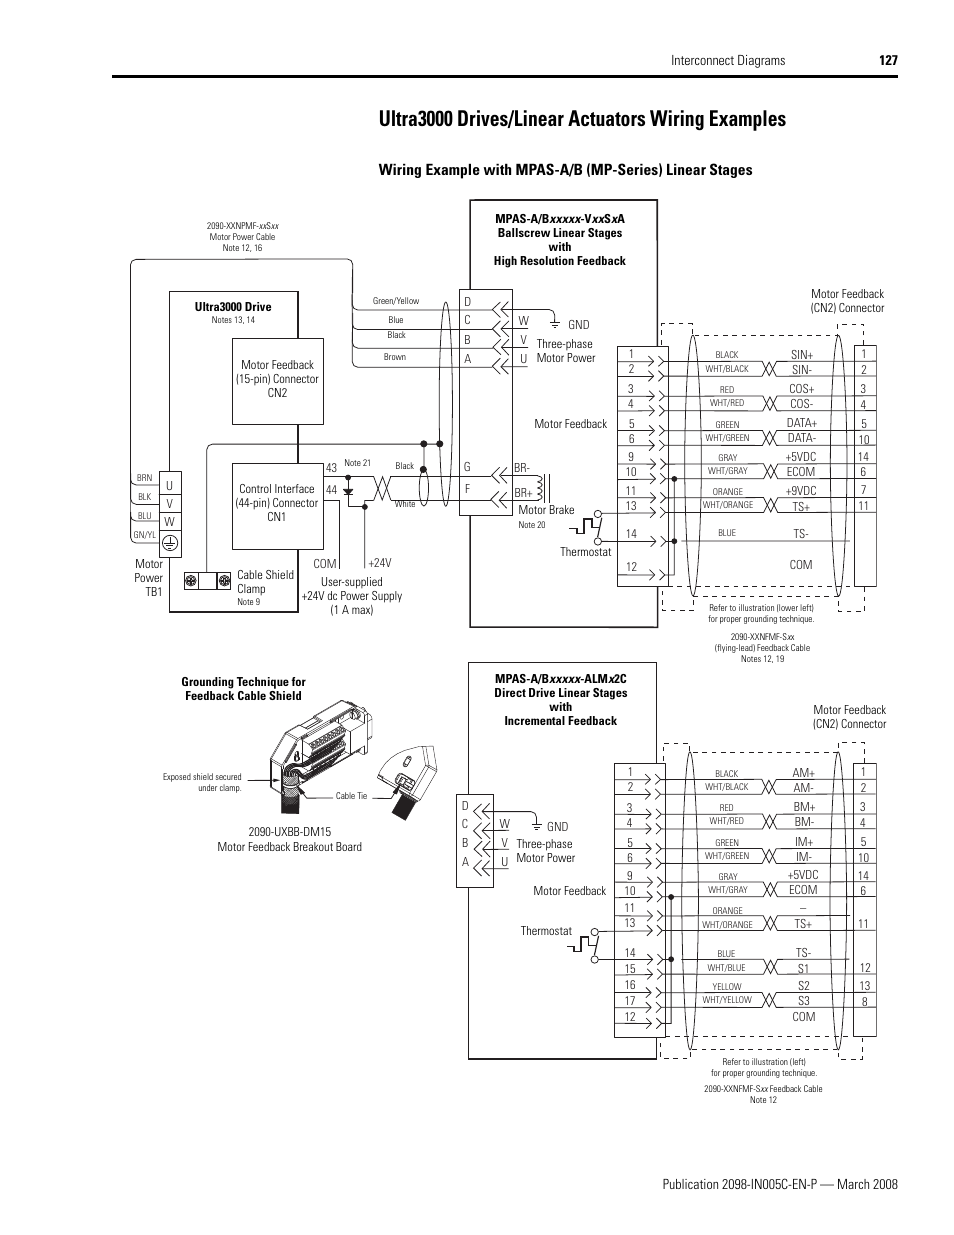 Ultra3000 Drives Linear Actuators Wiring Examples Rockwell Servo Drive Diagram Automation 2090 Integration Manual